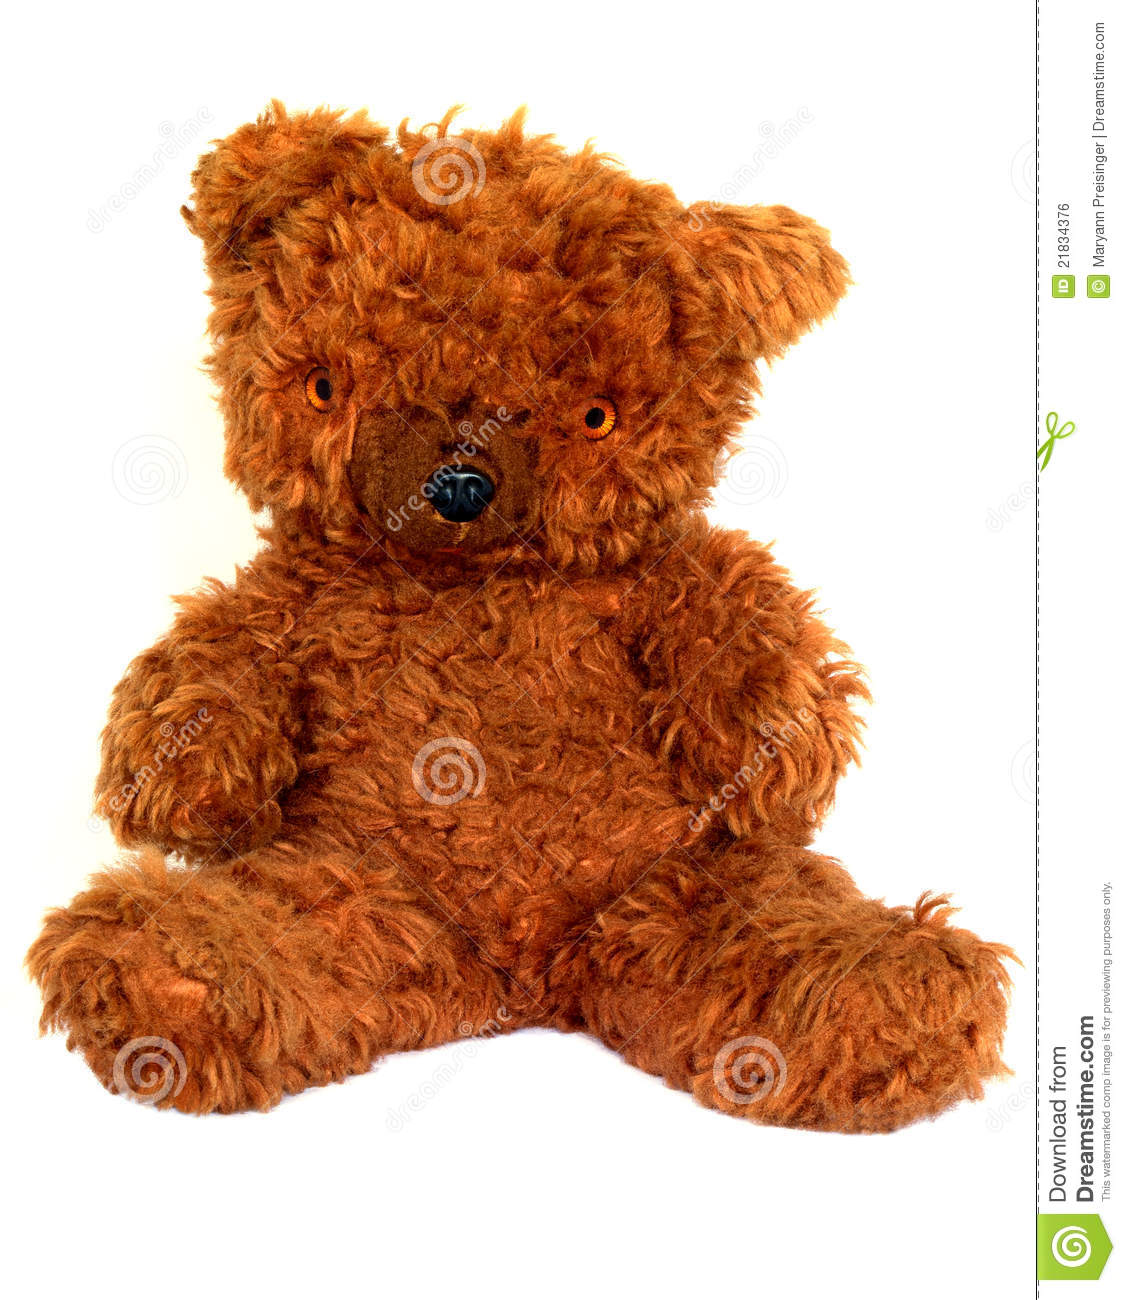 Old Furry Brown Teddy Bear On White Background Stock Photo ...